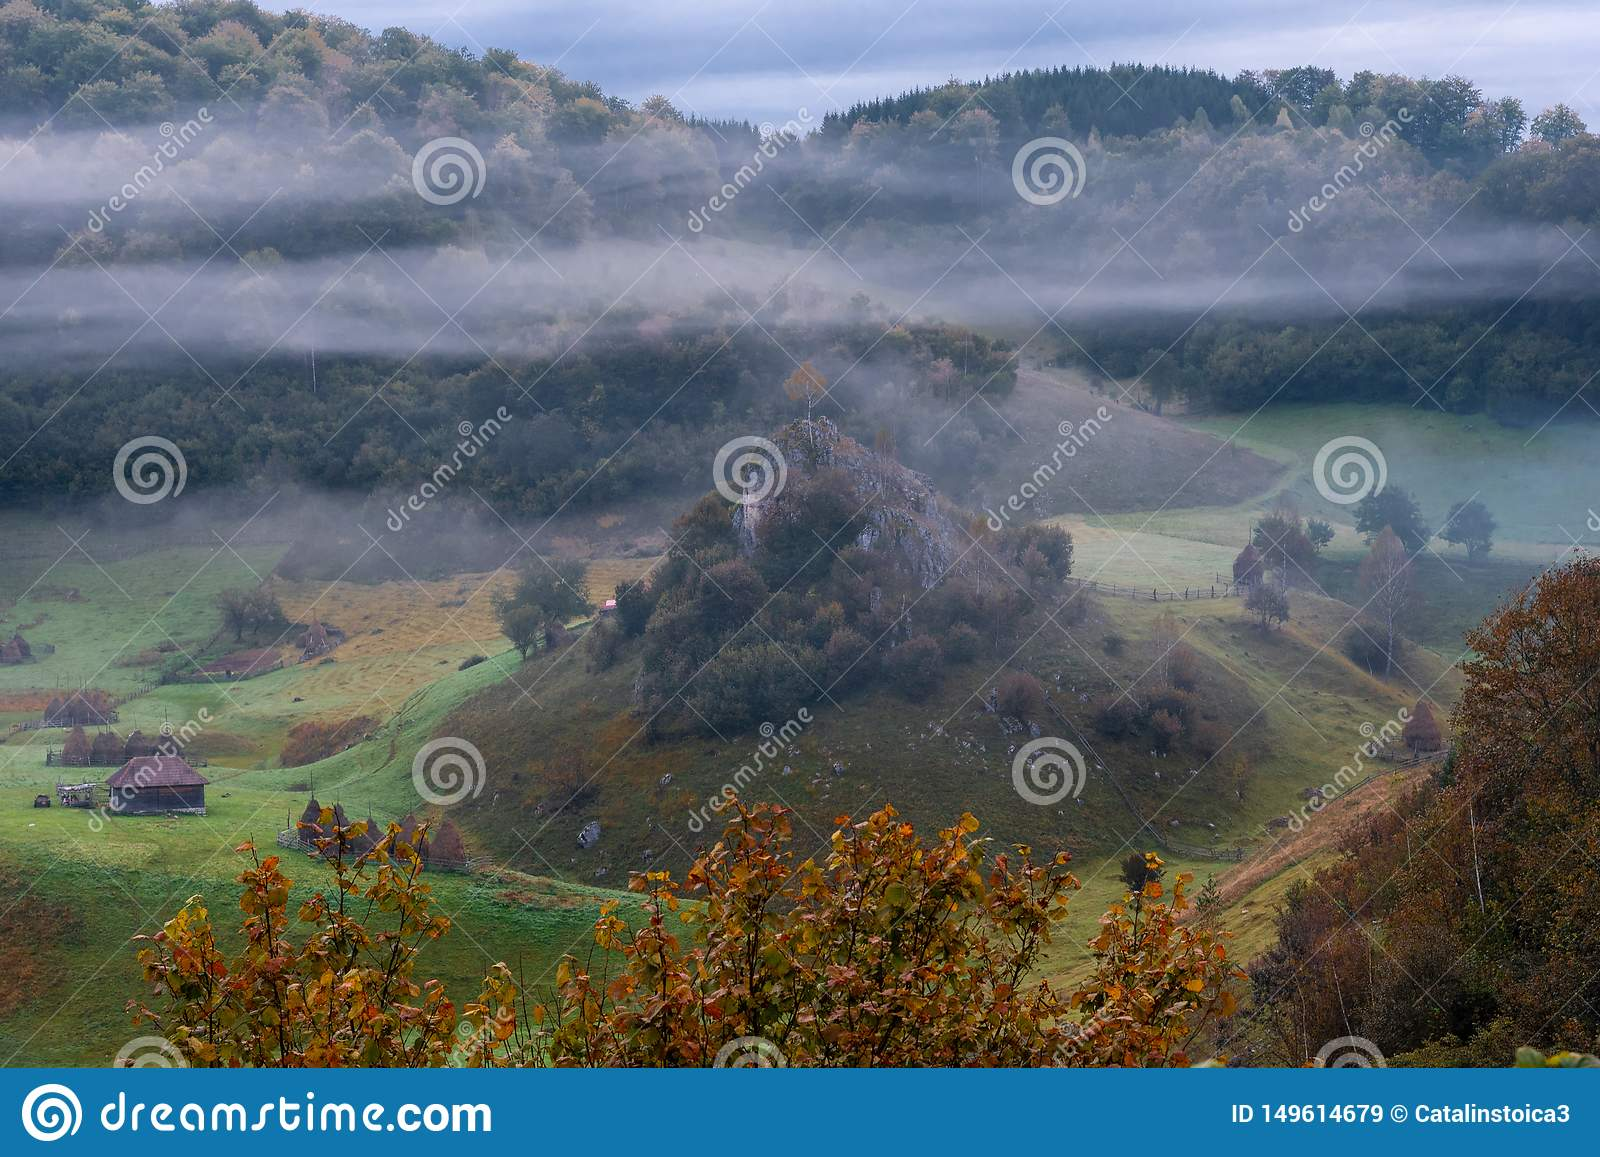 Cold misty morning in stunning remote location, Fundatura Ponorului village, Romania